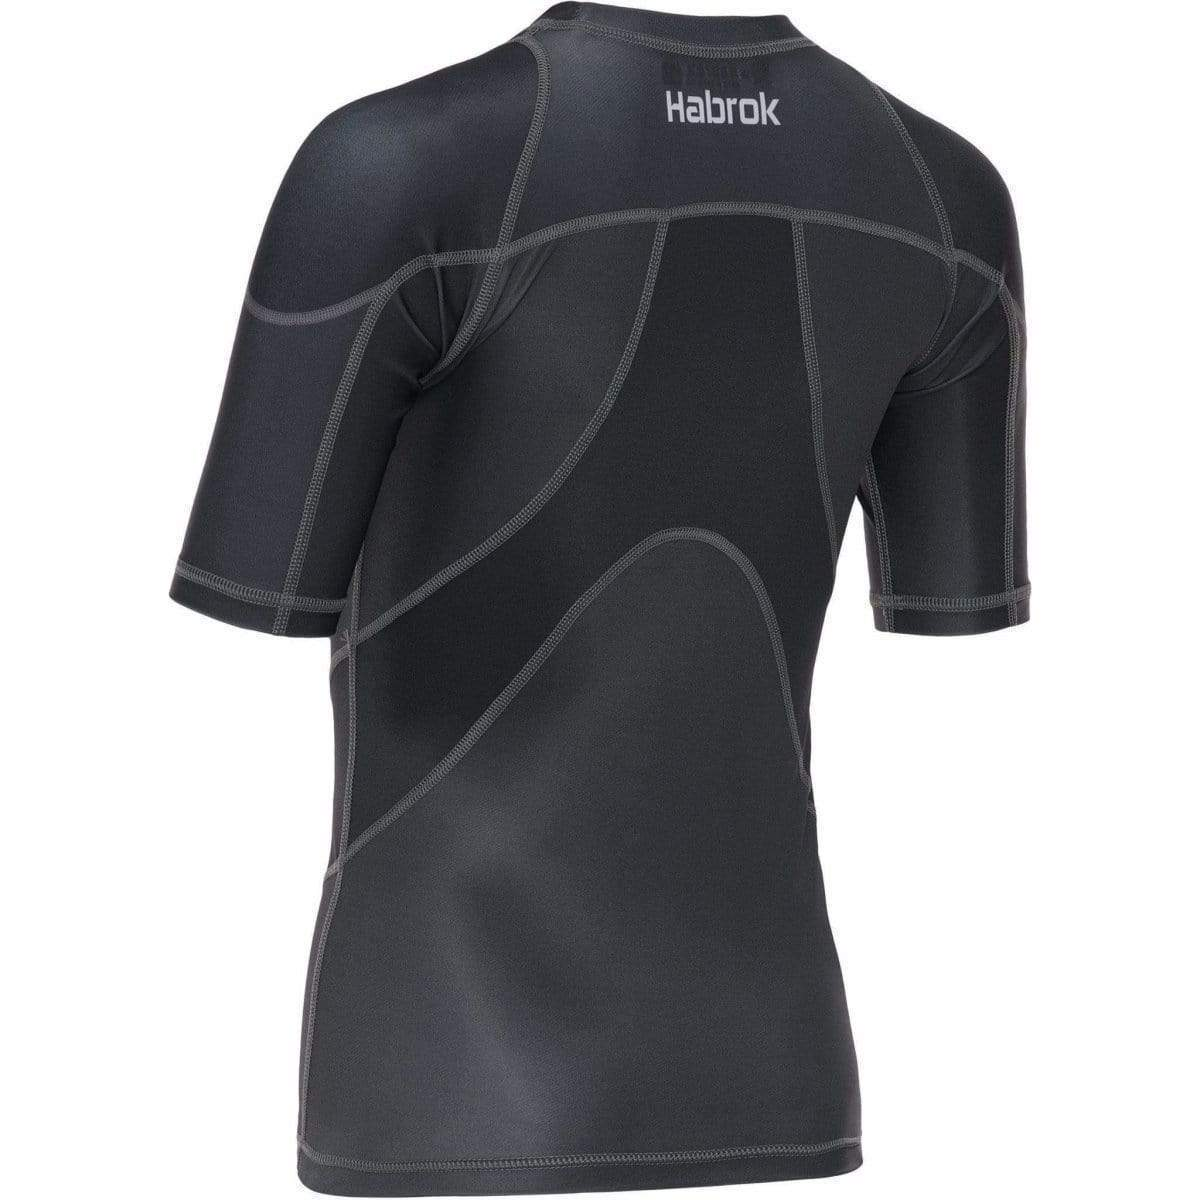 Habrok Rash Guard XS / GREY Pugnator 2.0 | Rash Guard | Women | Half Sleeve | Grey